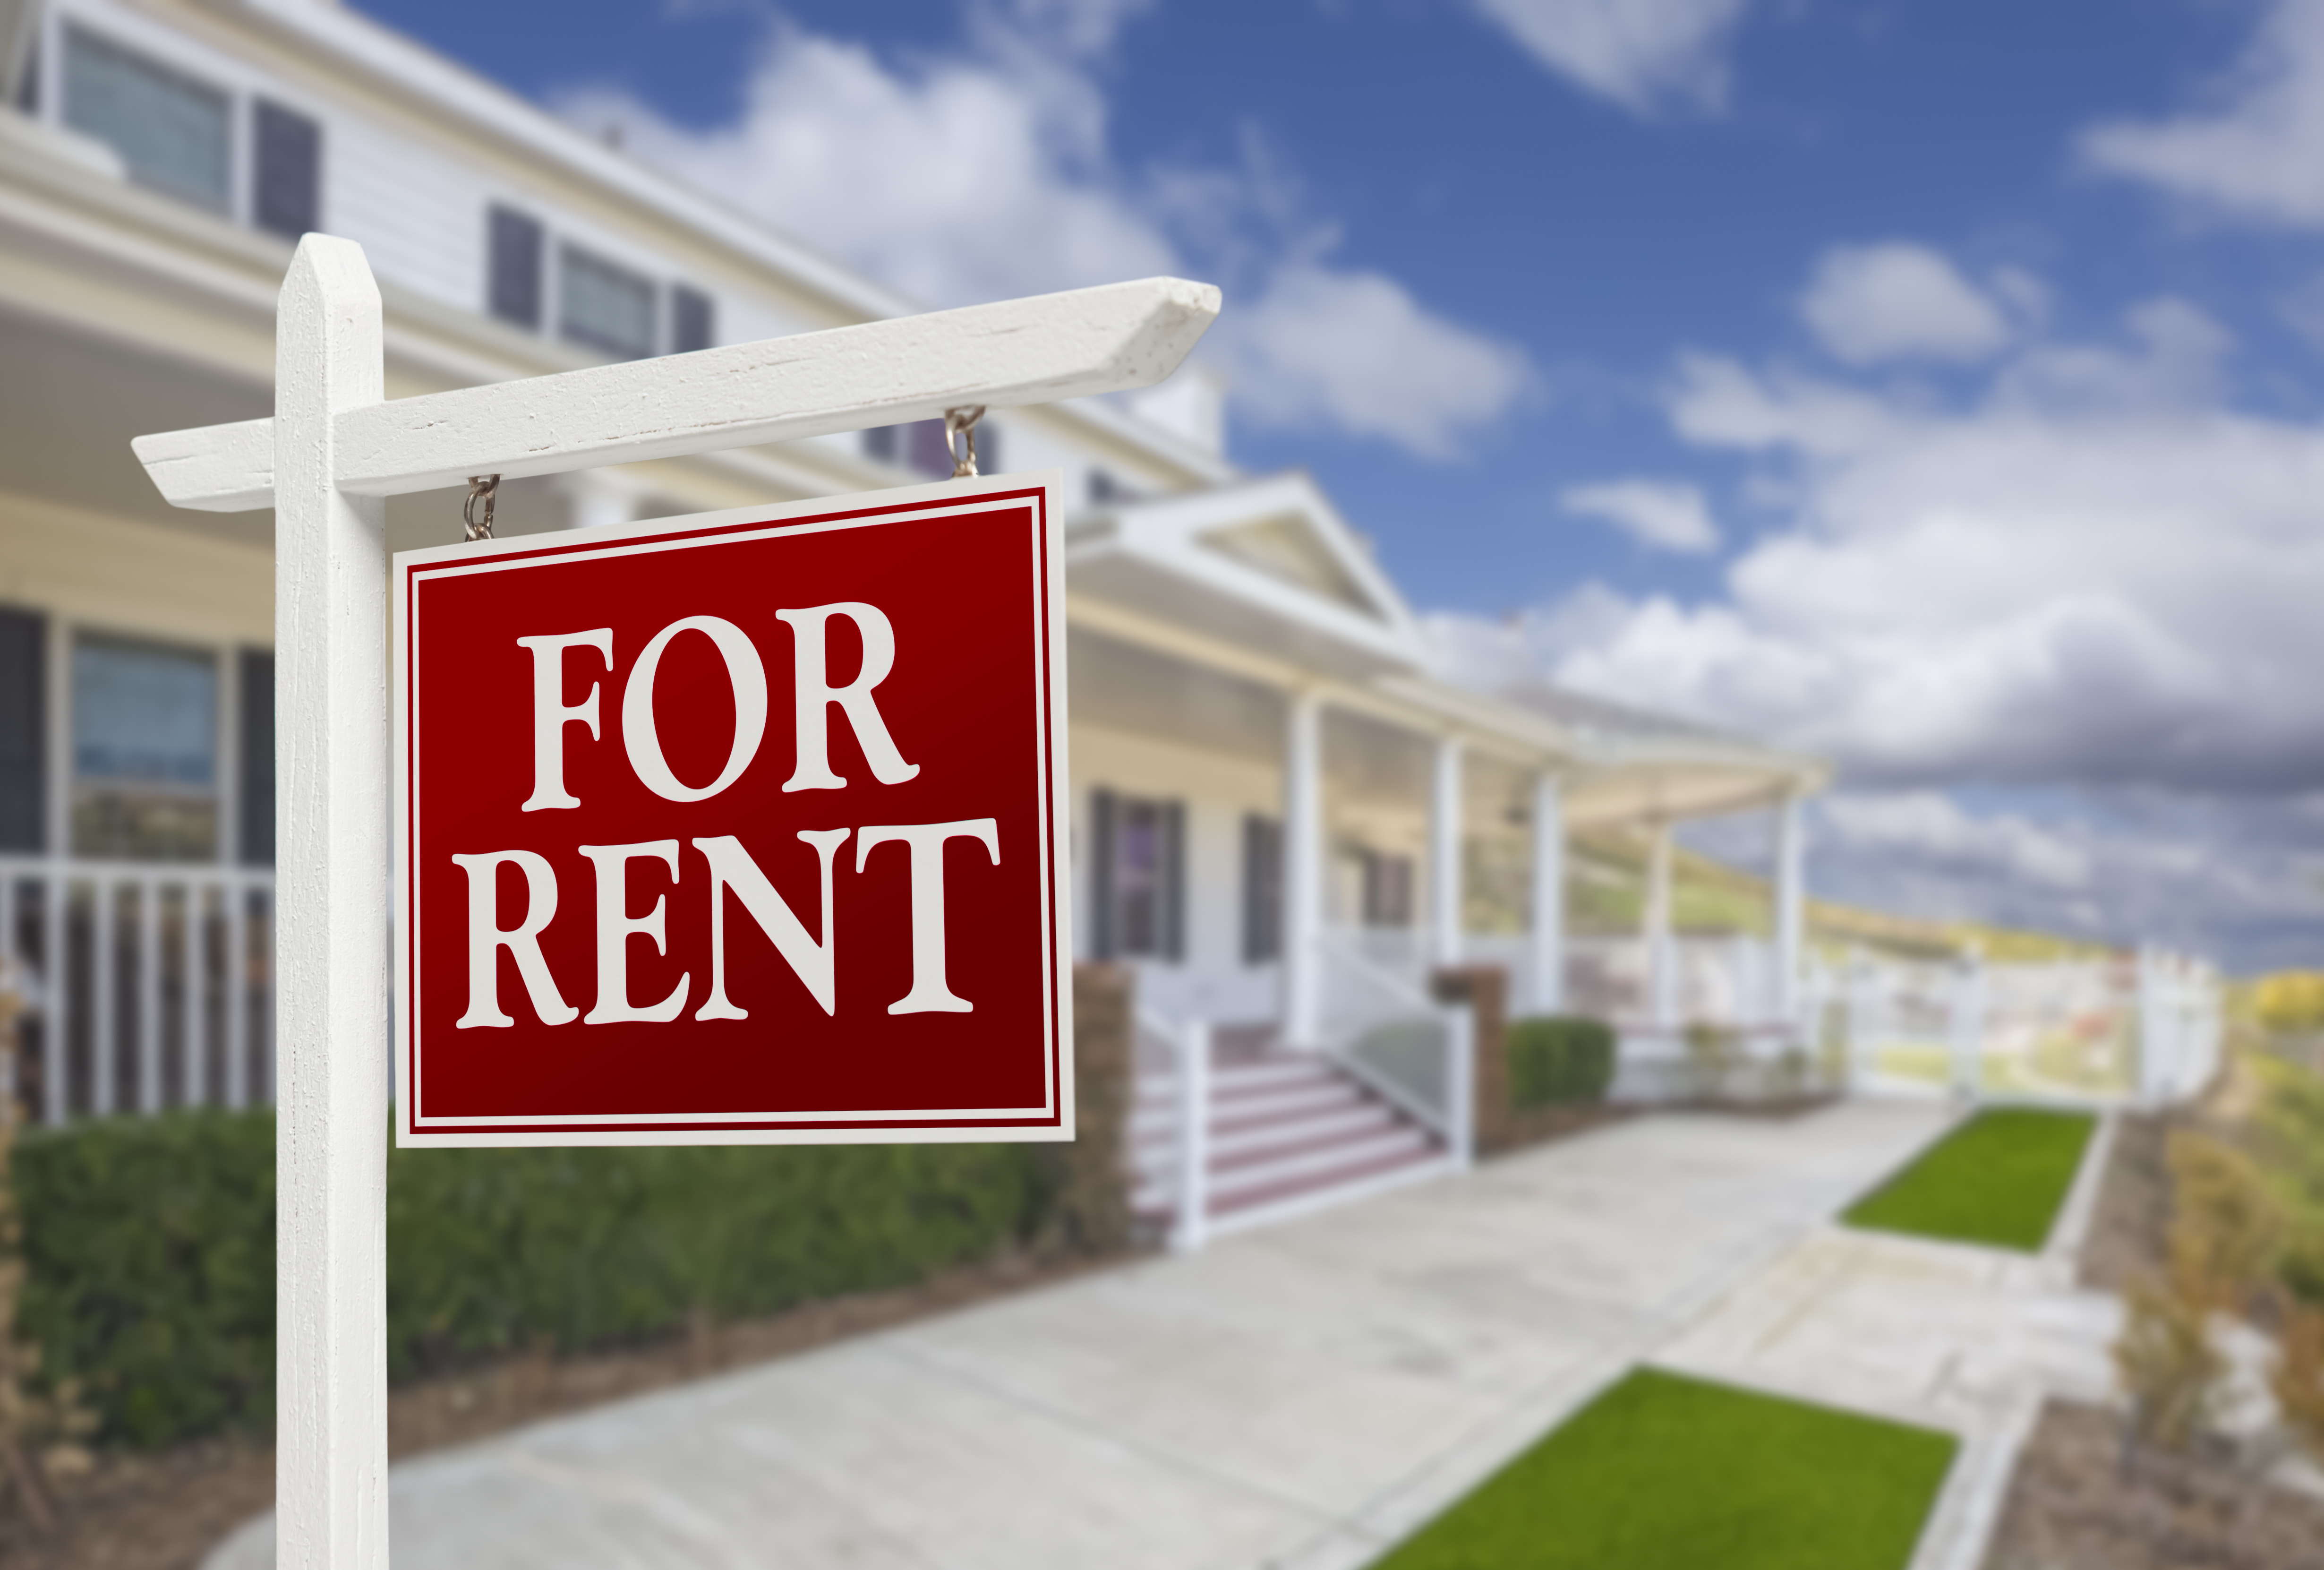 Hurricane City Council Comes To Conclusions On Vacation Rentals St George News